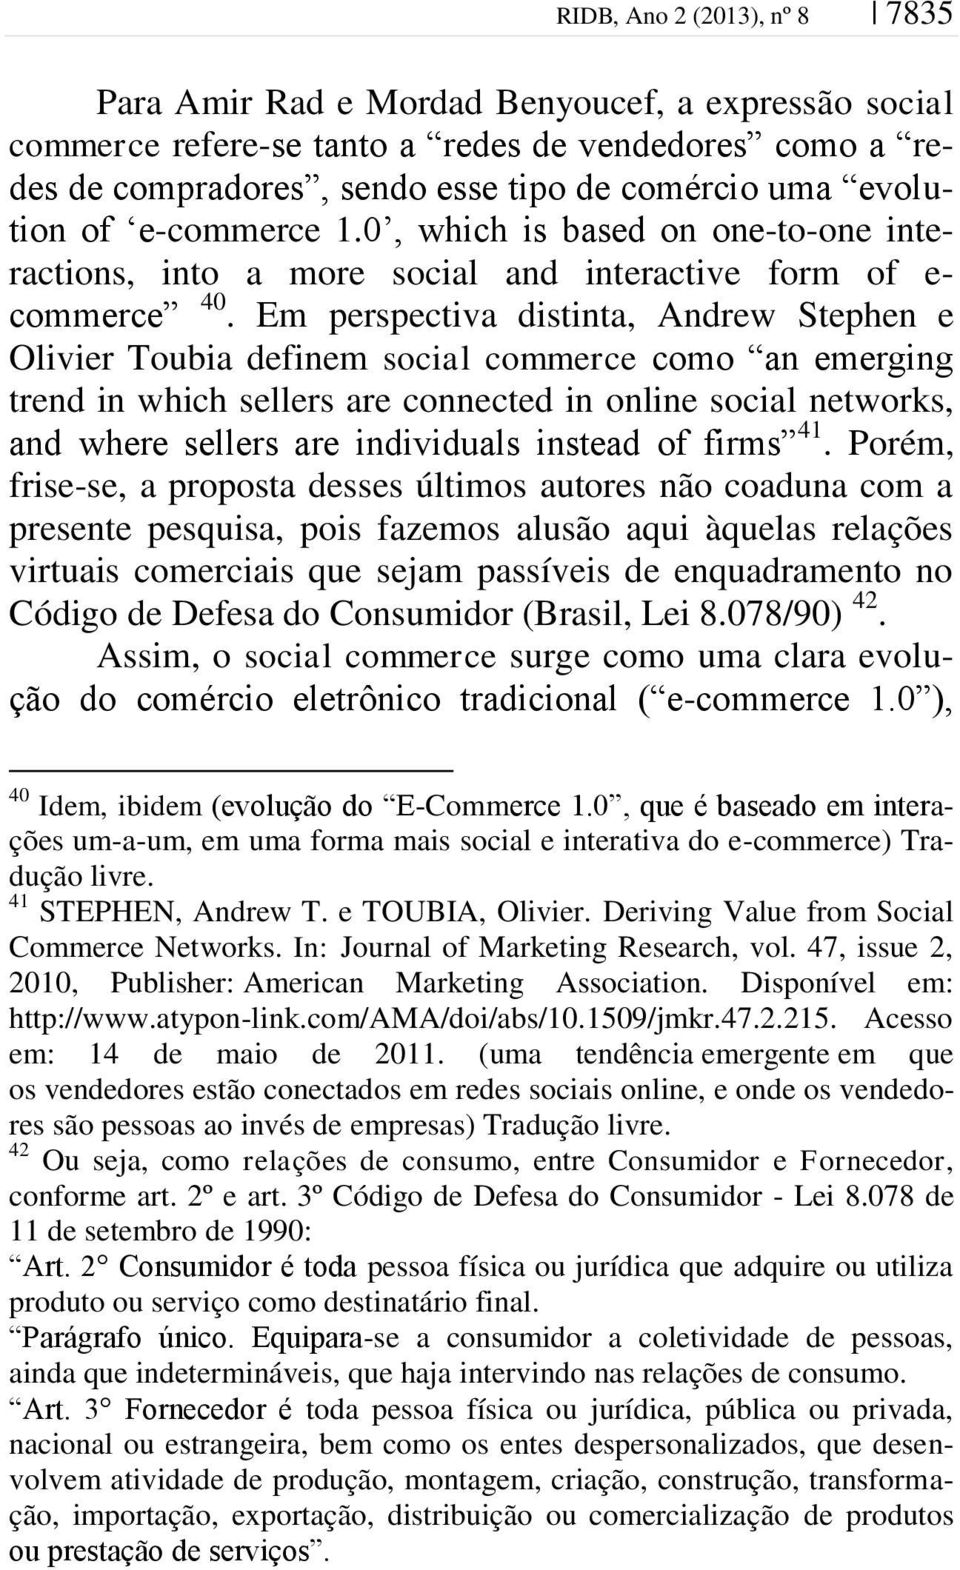 Em perspectiva distinta, Andrew Stephen e Olivier Toubia definem social commerce como an emerging trend in which sellers are connected in online social networks, and where sellers are individuals